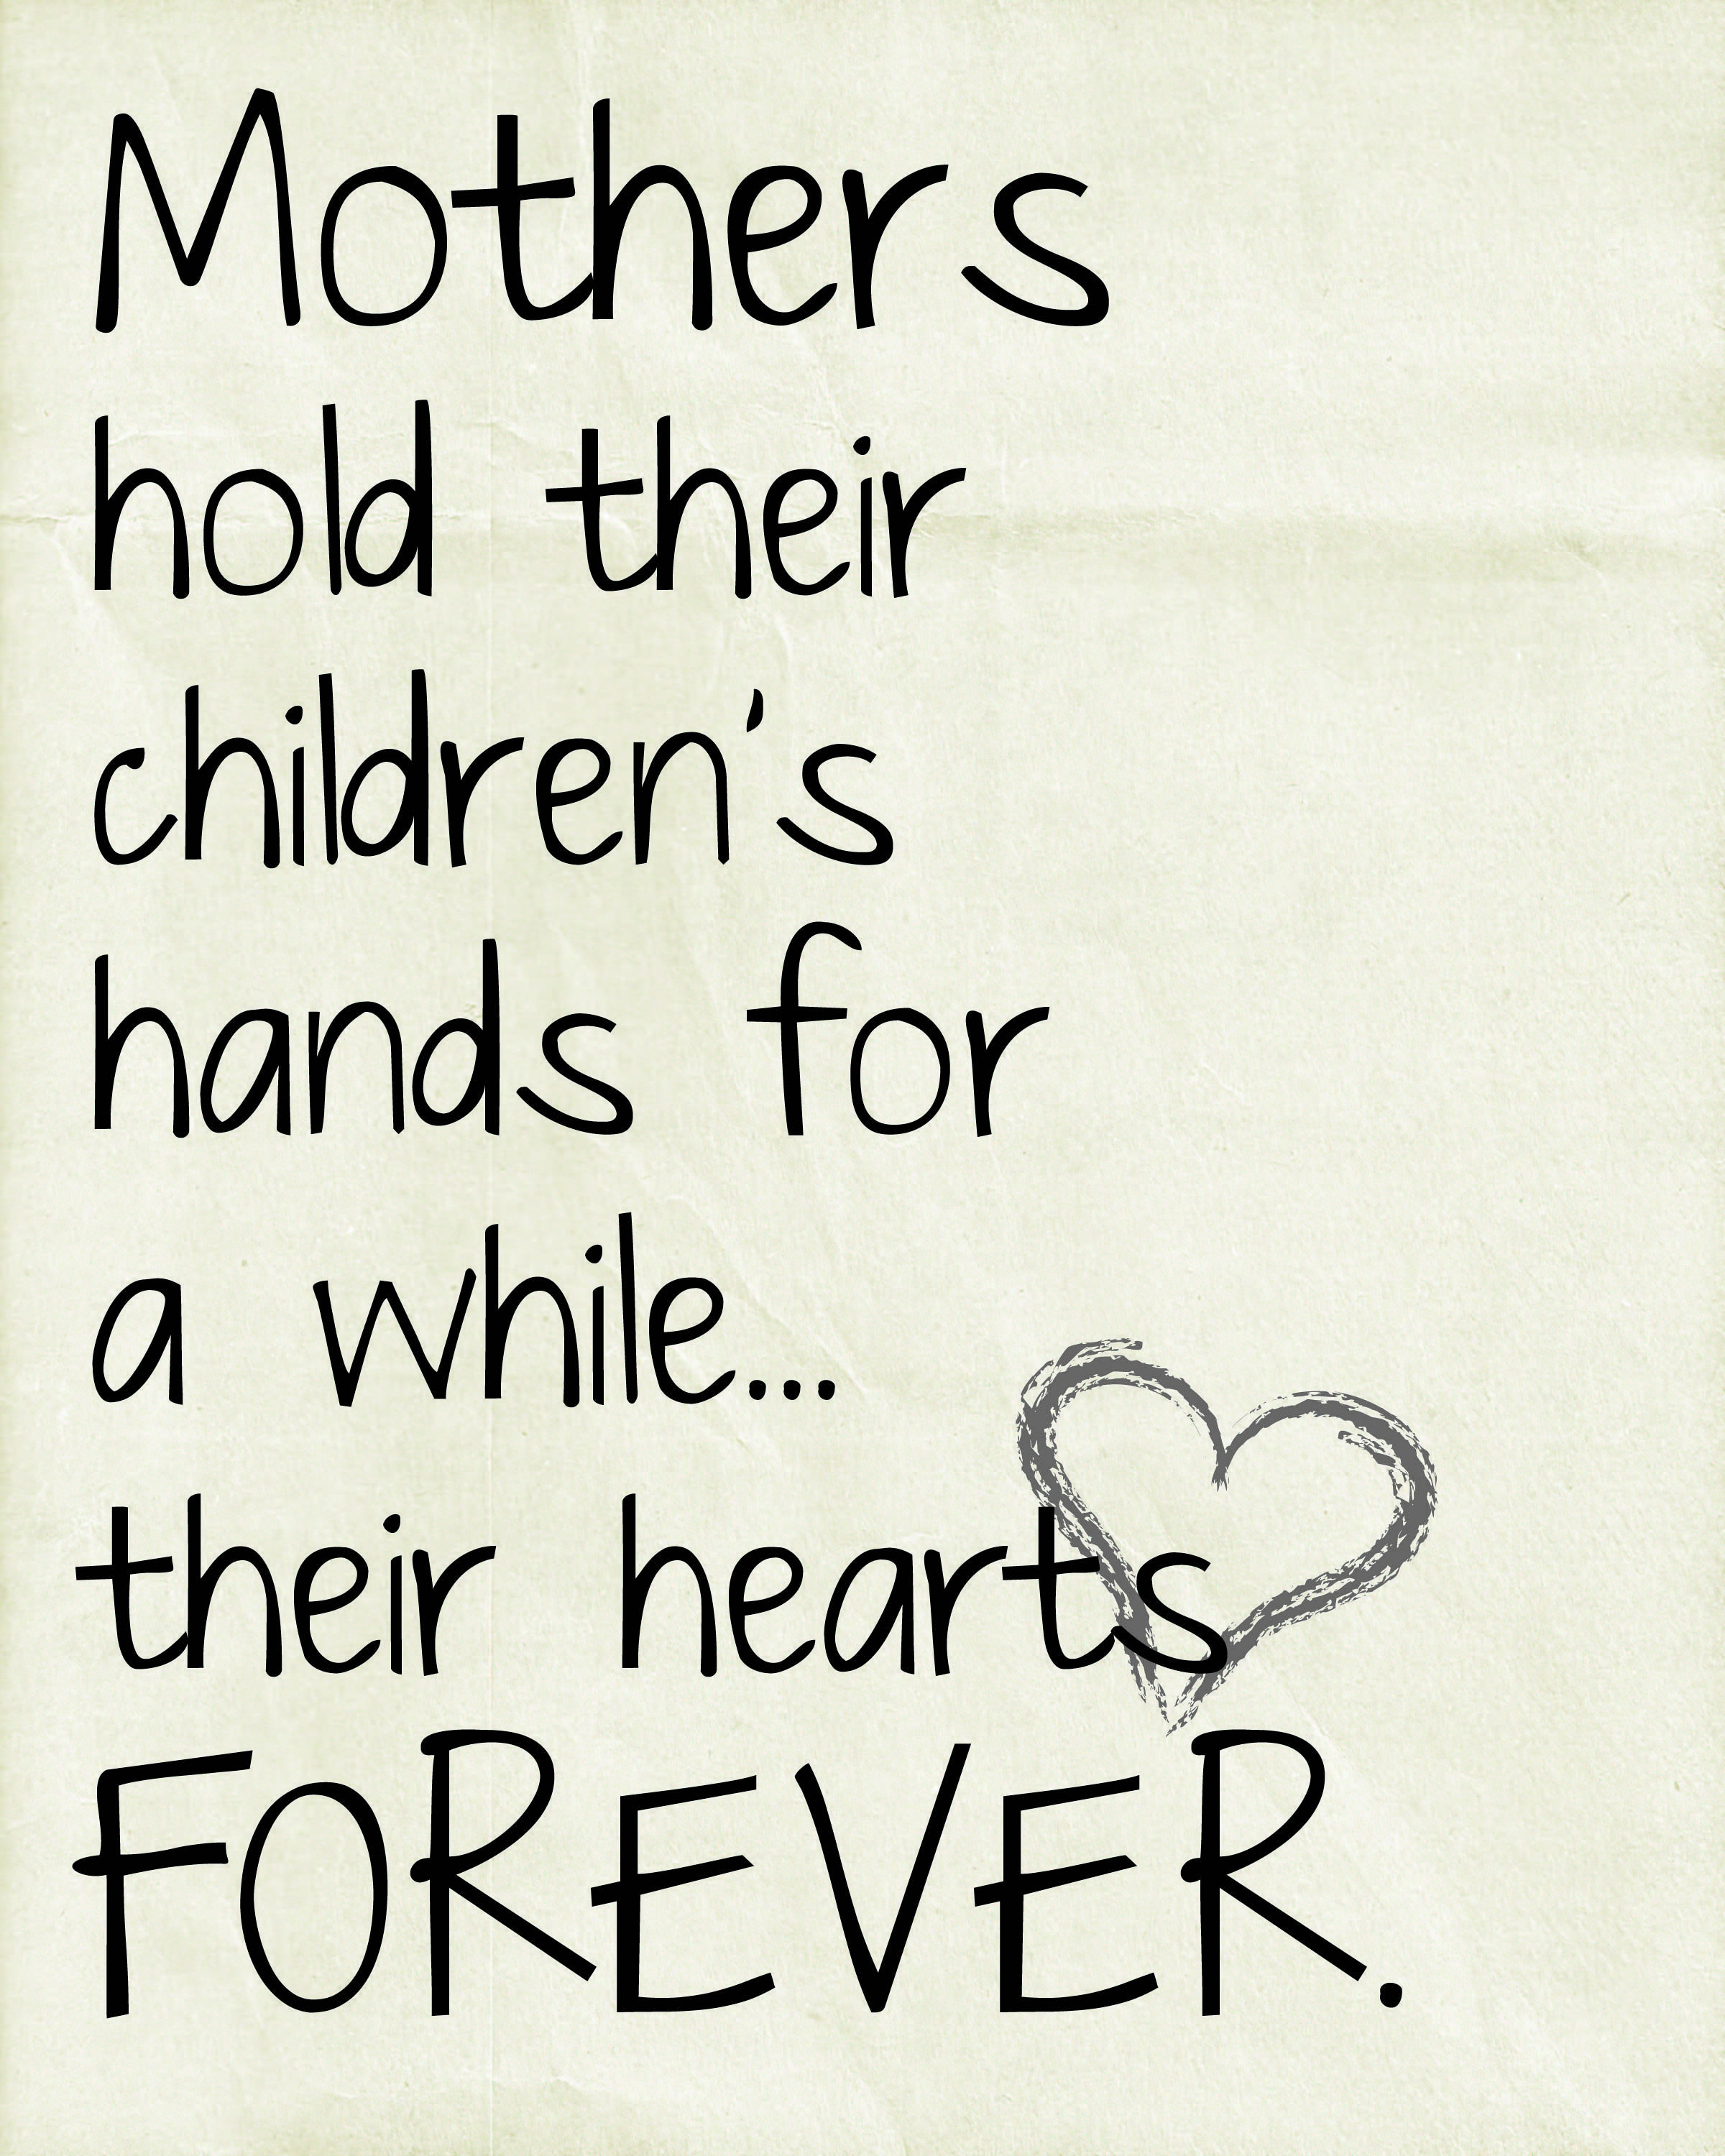 A Mother holds her children/'s hands for a short while but their hearts forever,mom,Mothers Day,holding hearts of children,mother child love